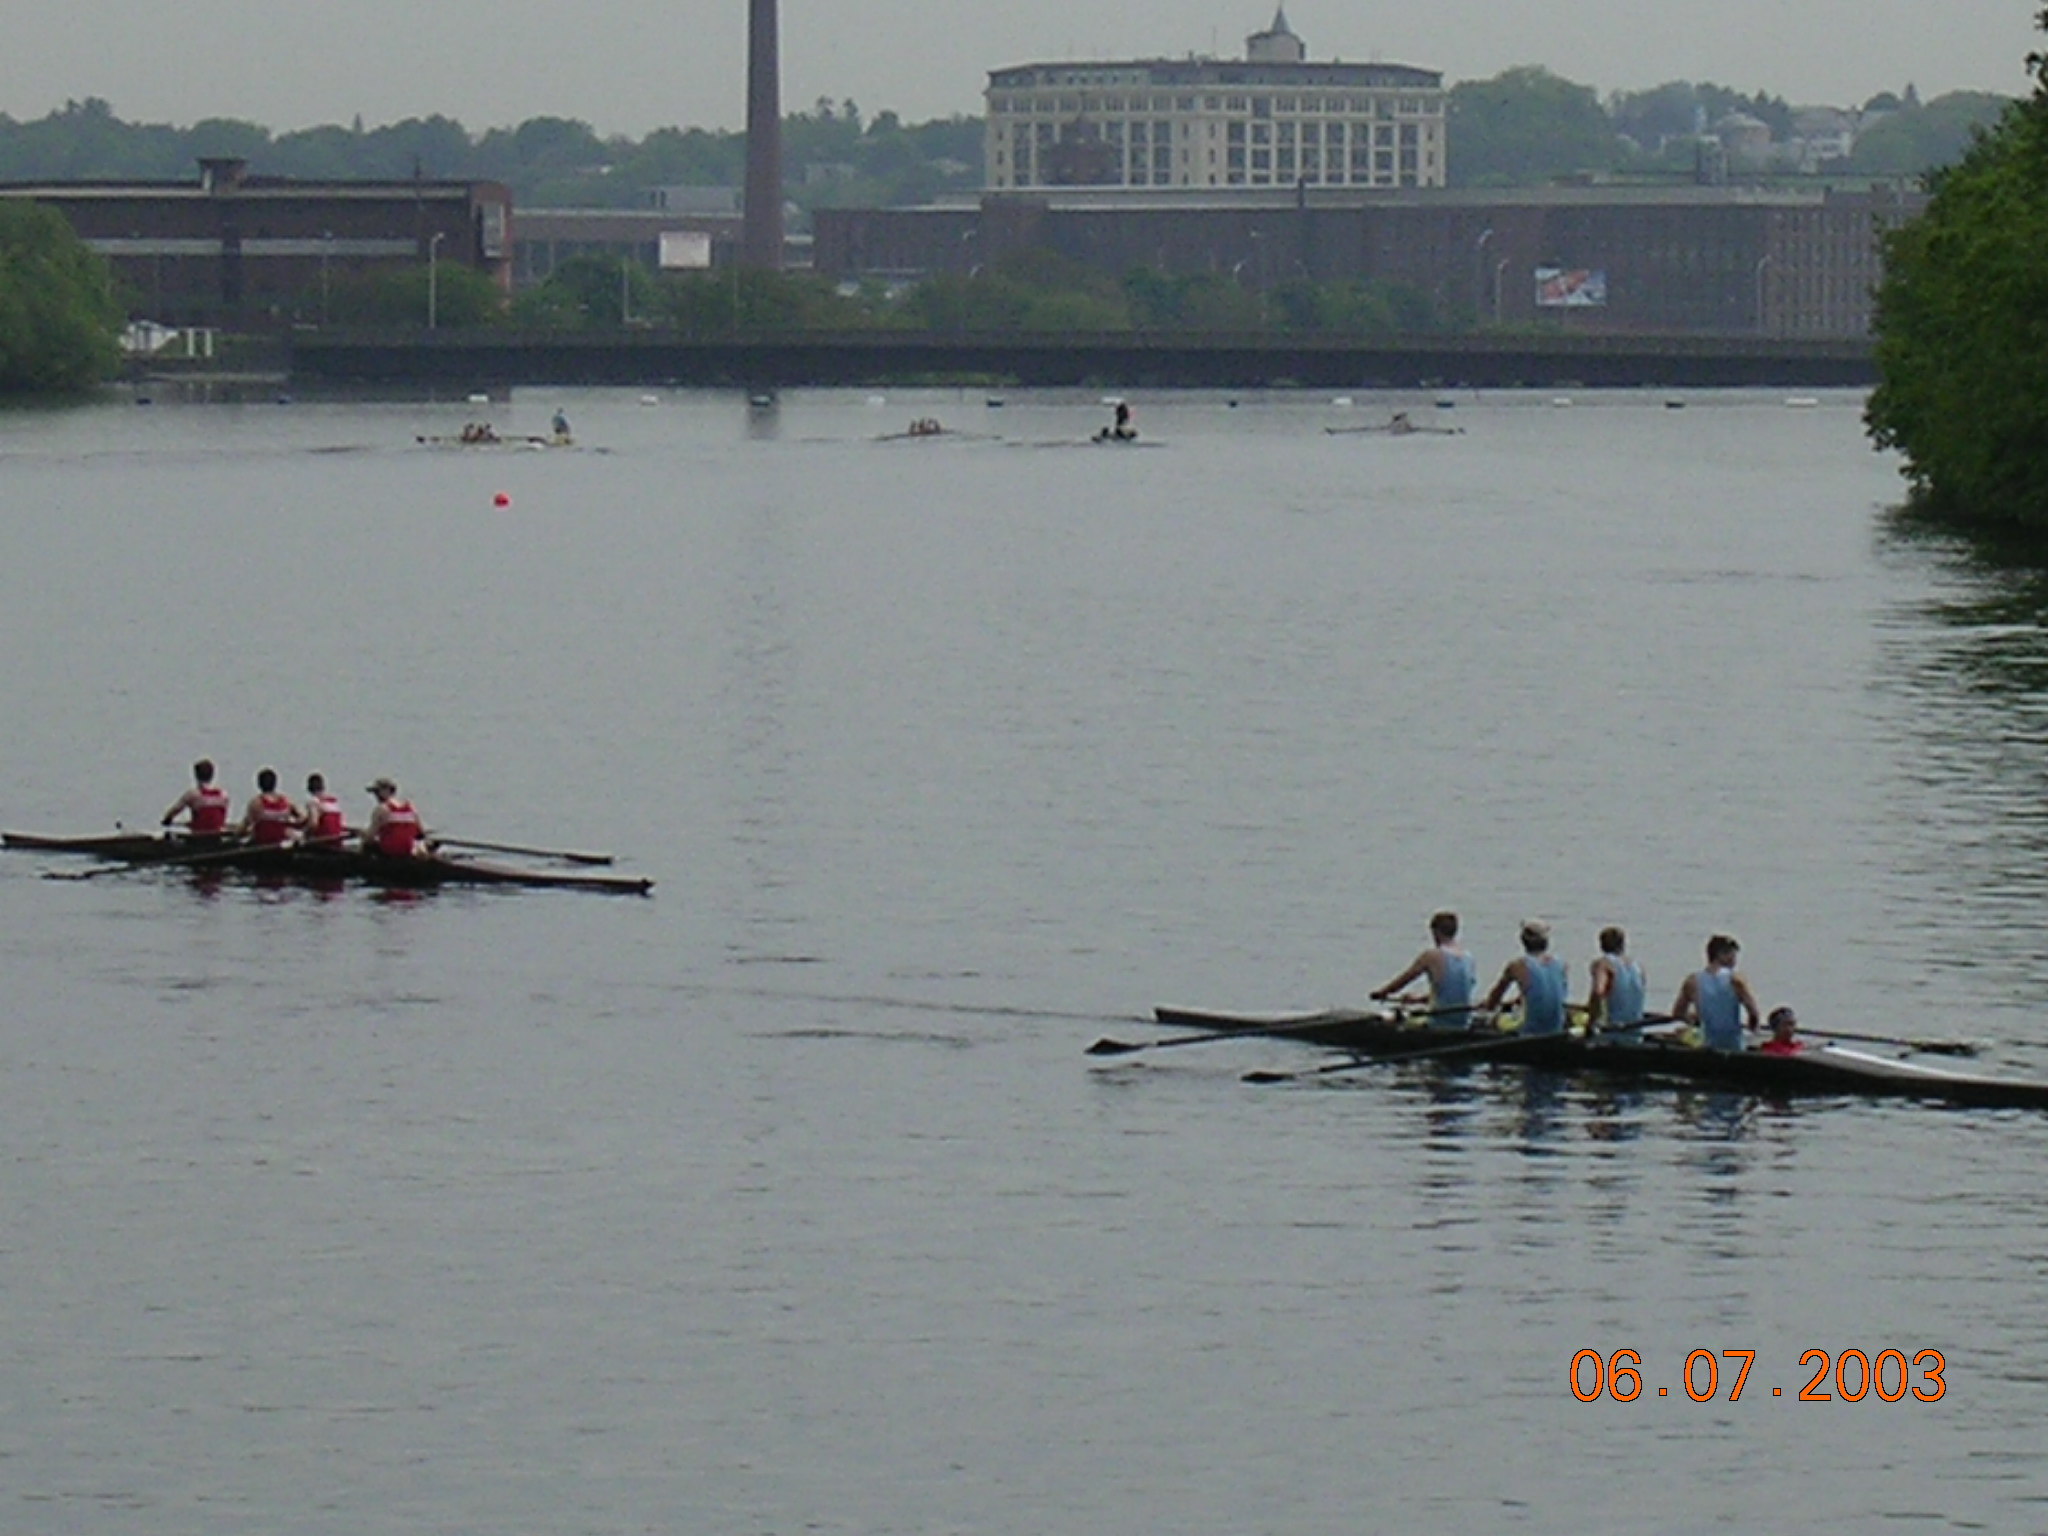 Lawrence Celebration Regatta